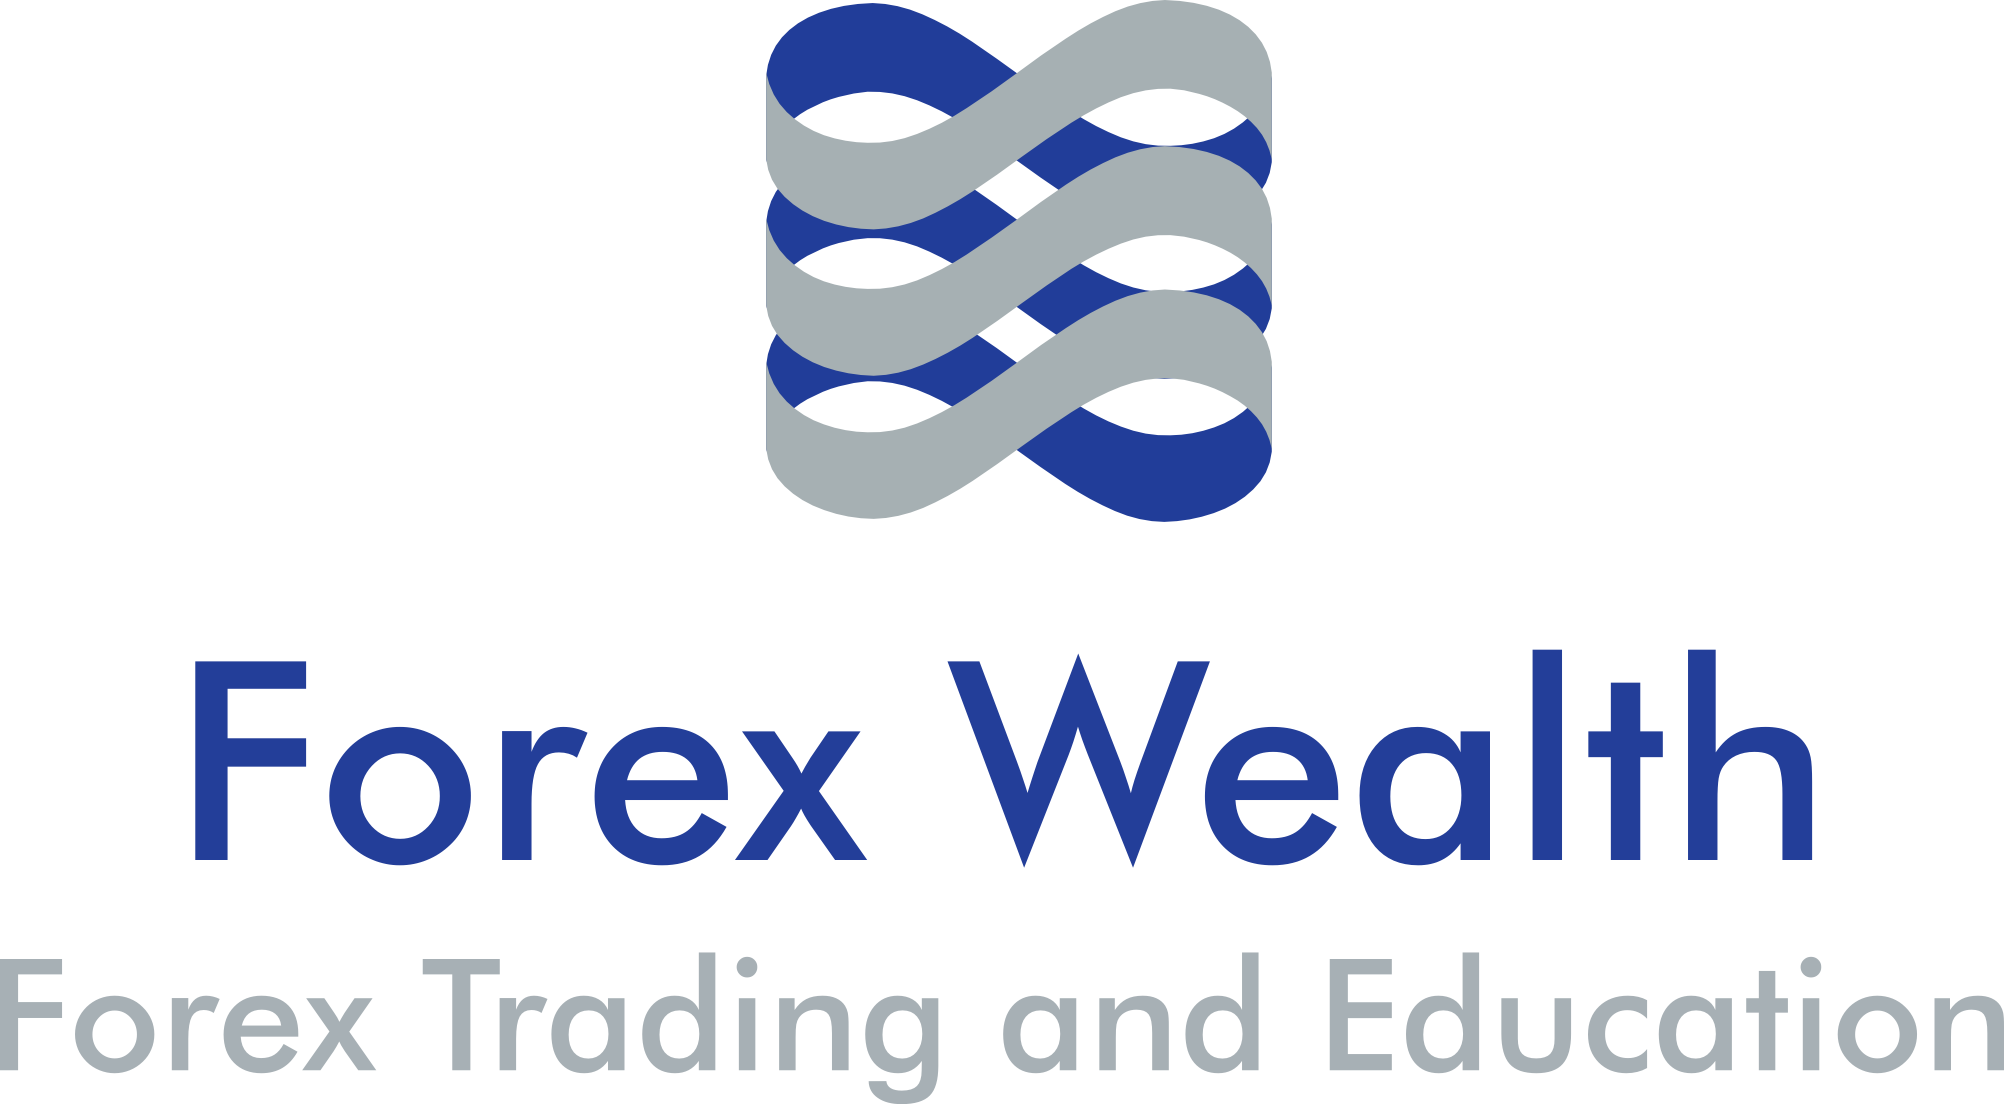 Forex Wealth